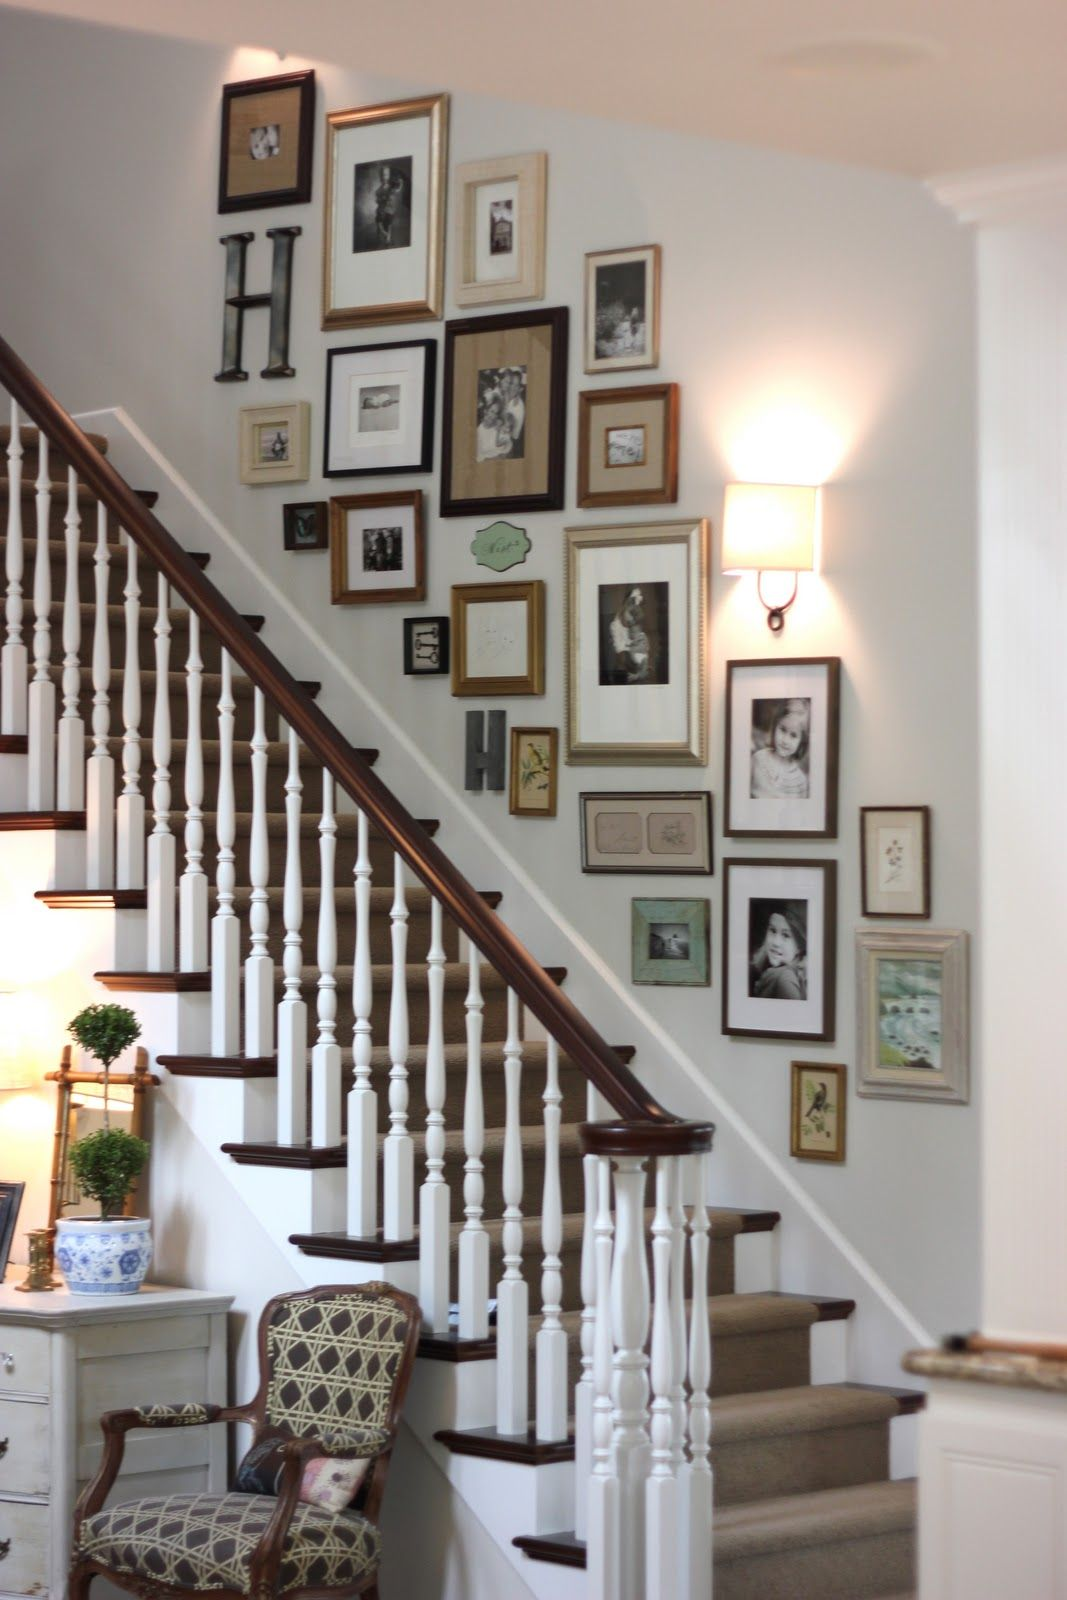 decorating a staircase {ideas & inspiration} | gallery wall